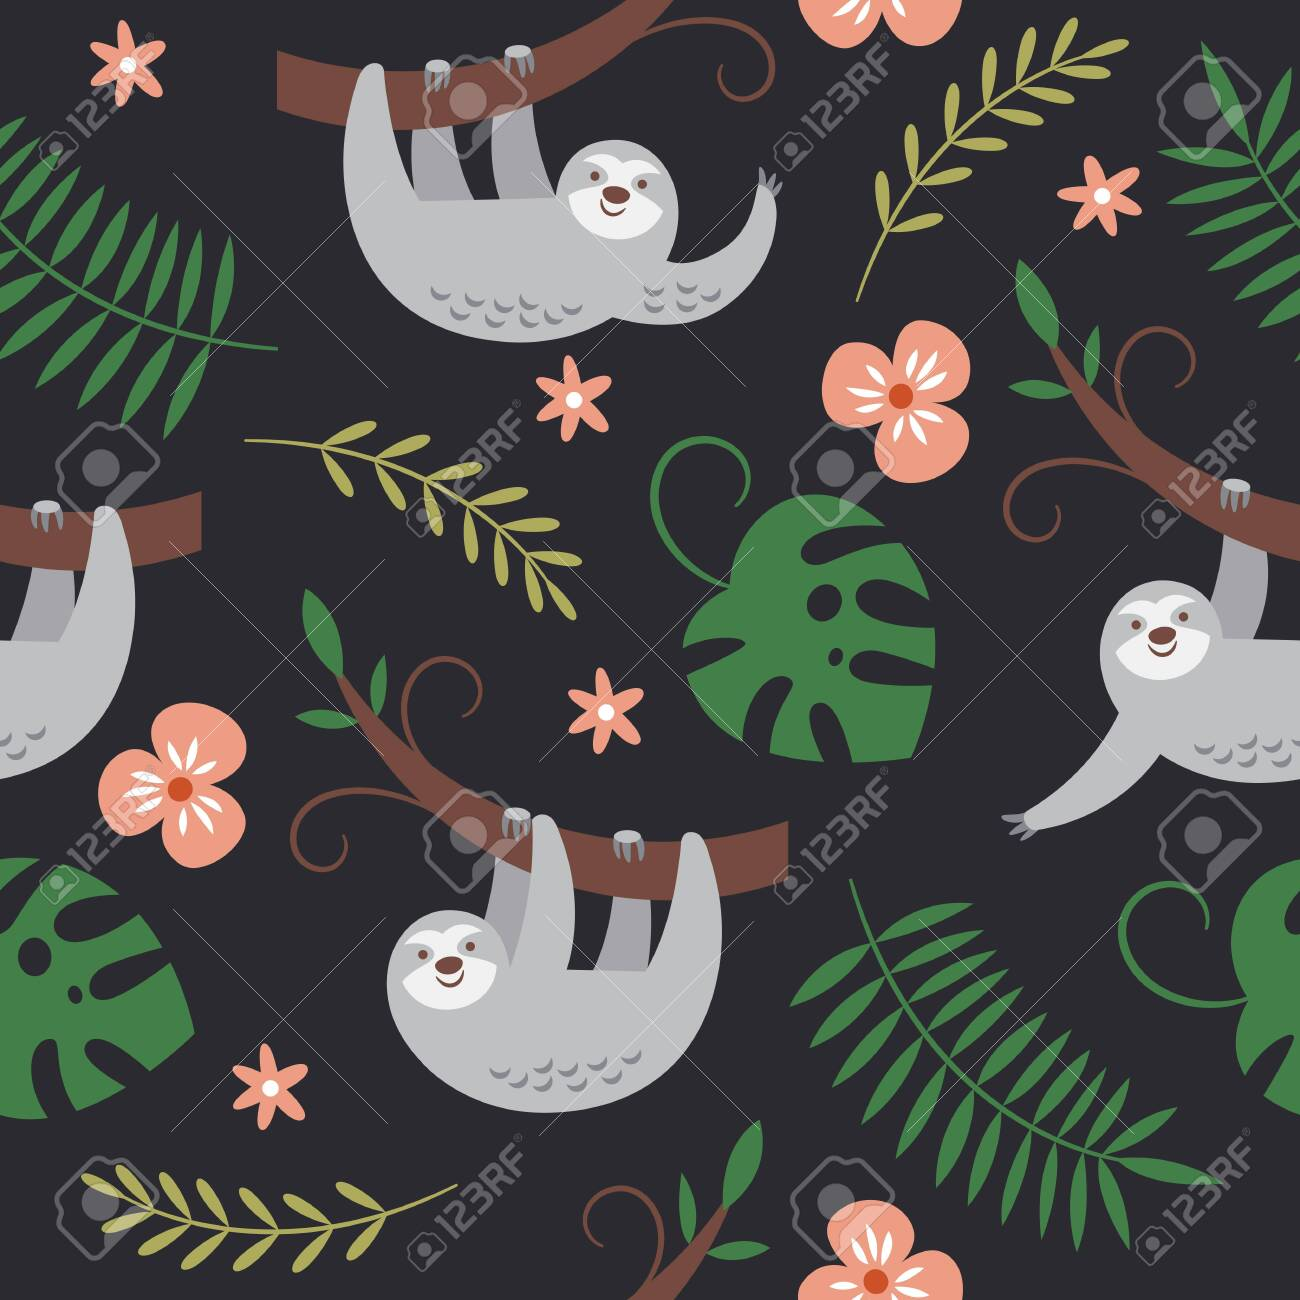 cute sloths hanging on the tree, seamless pattern - 124560219